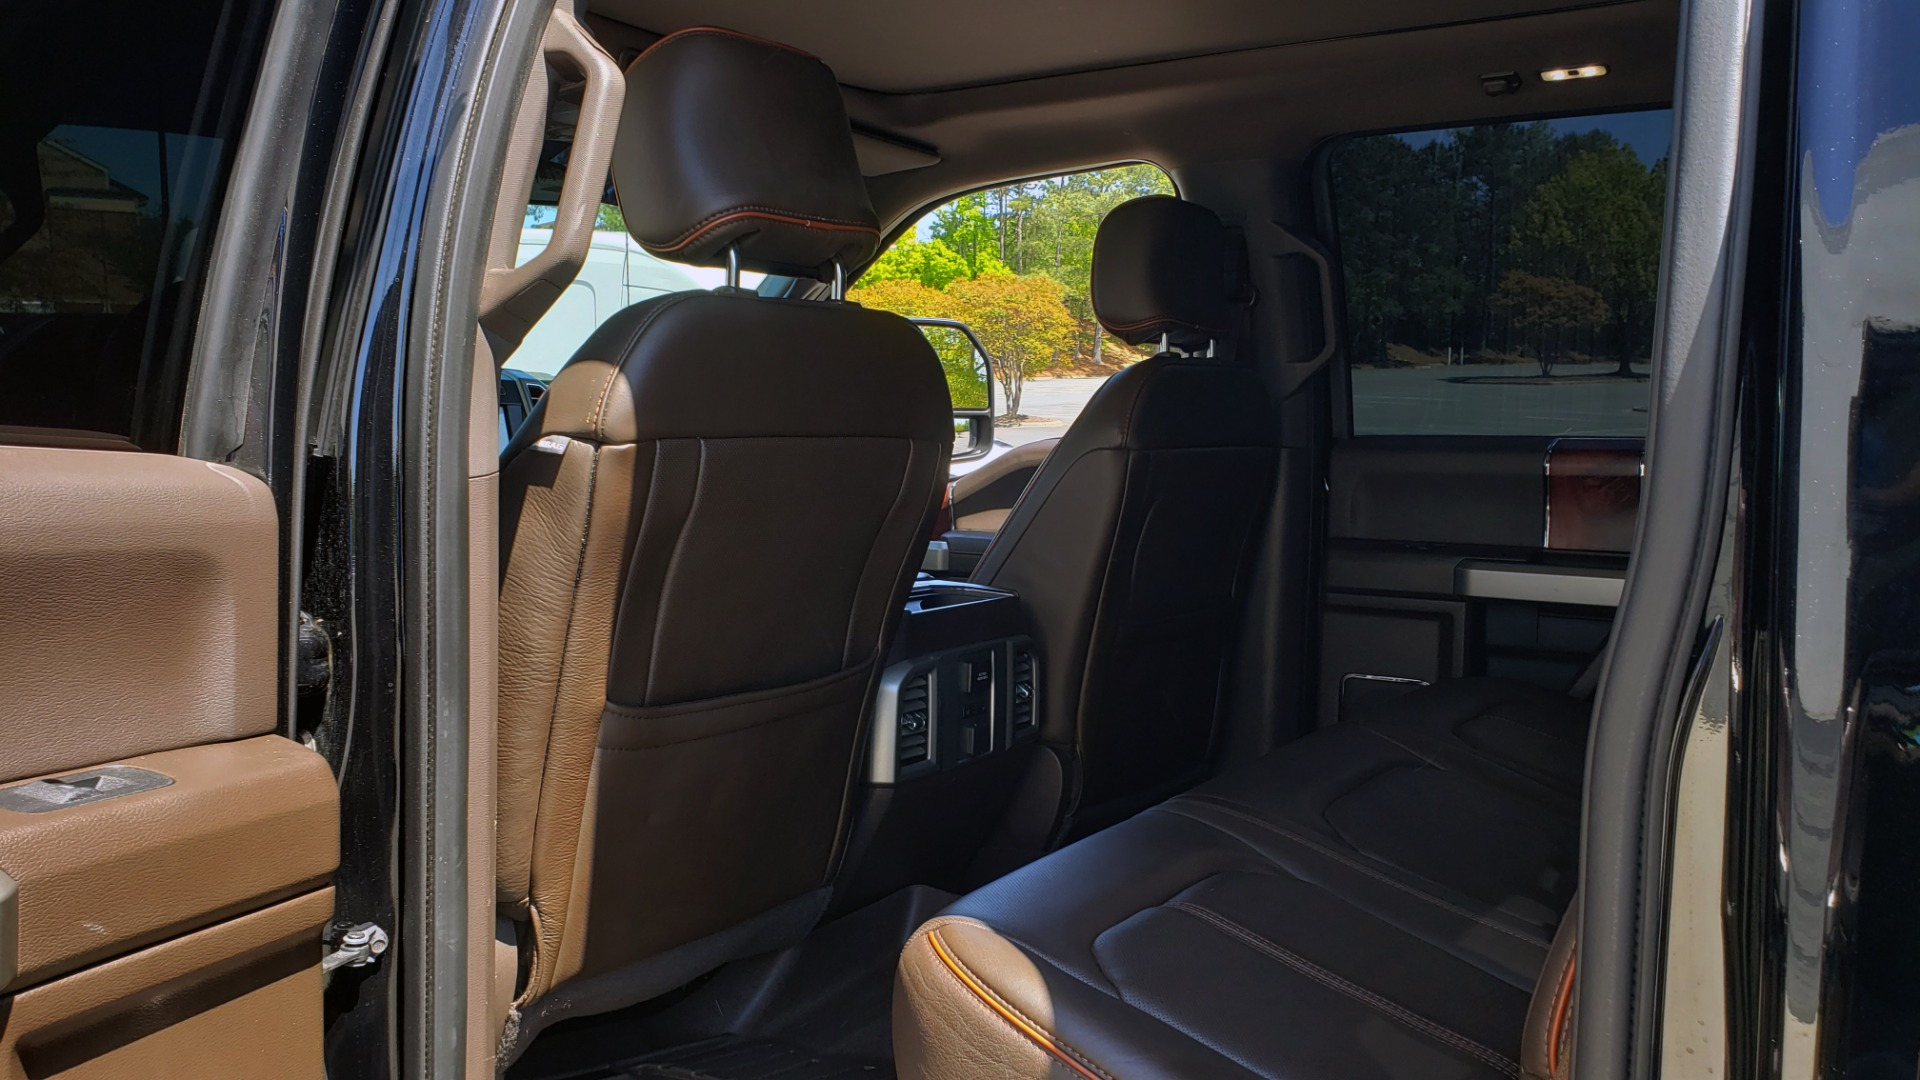 Used 2017 Ford SUPER DUTY F-450 DRW KING RANCH 4X4 / 176IN WB / 6.7L POWER-STROKE / LOADED for sale Sold at Formula Imports in Charlotte NC 28227 67